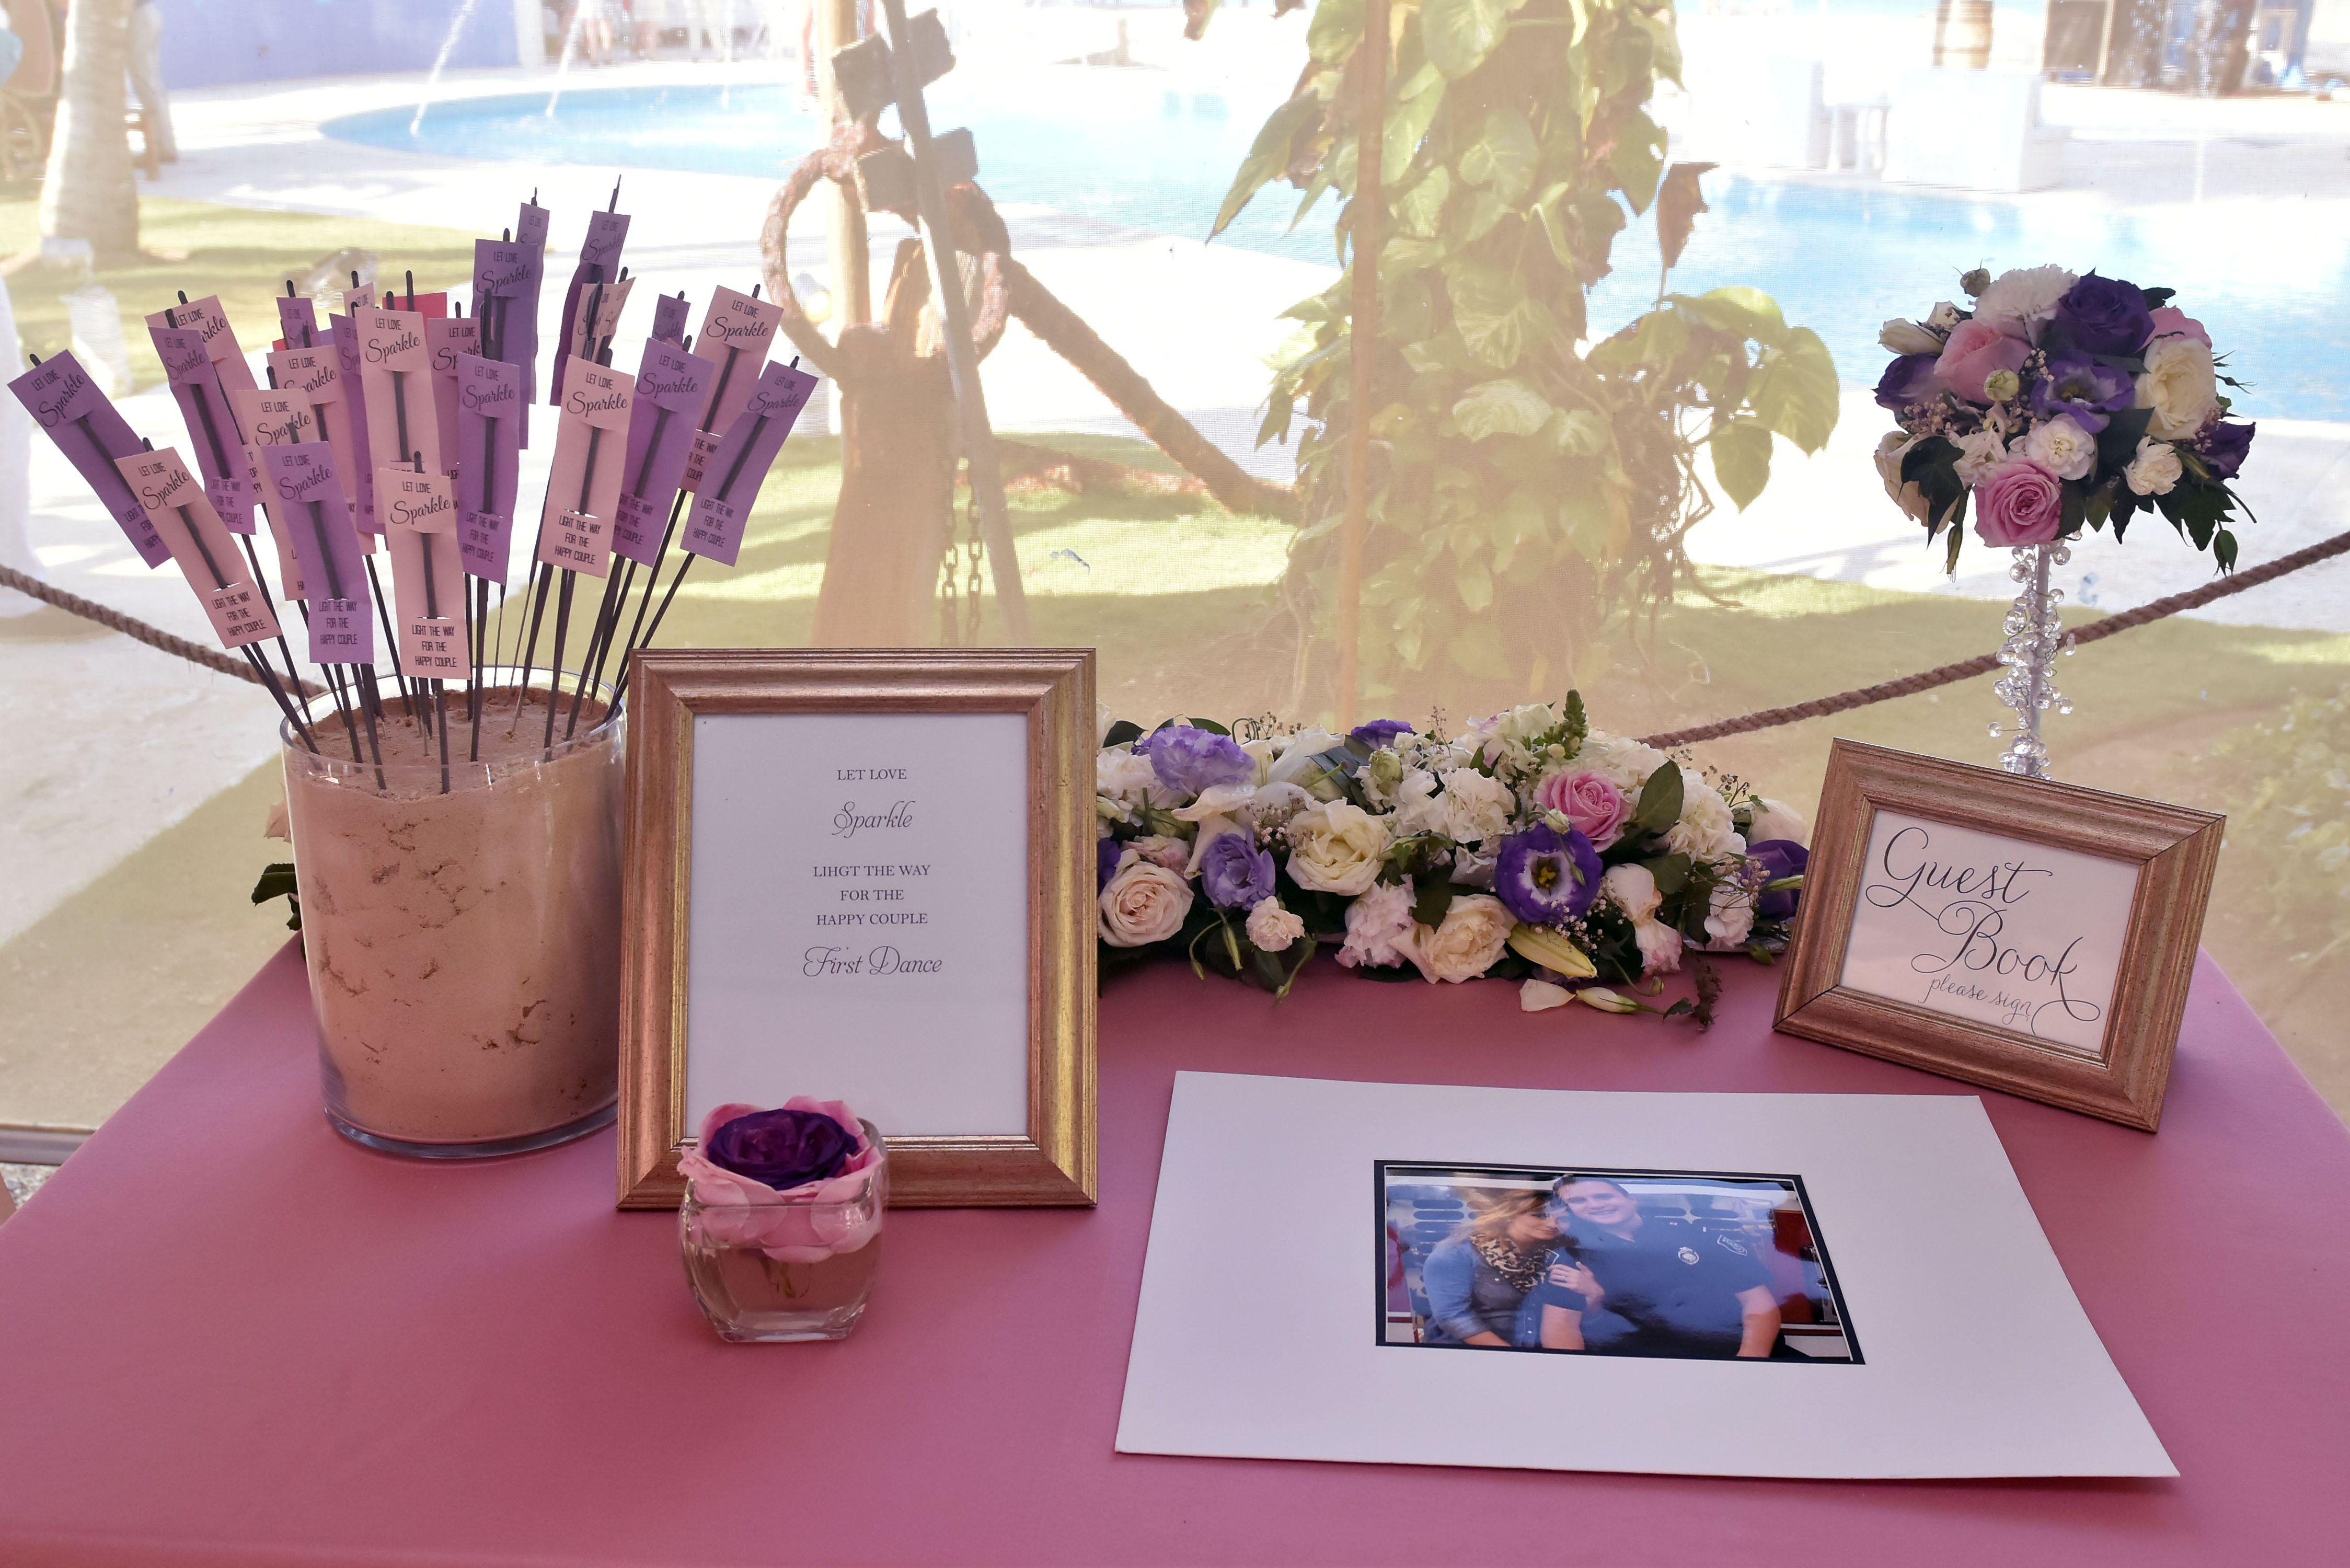 on decorations adelaide pinterest purple pict best awesome reception images light elegant wedding of inspirational decor